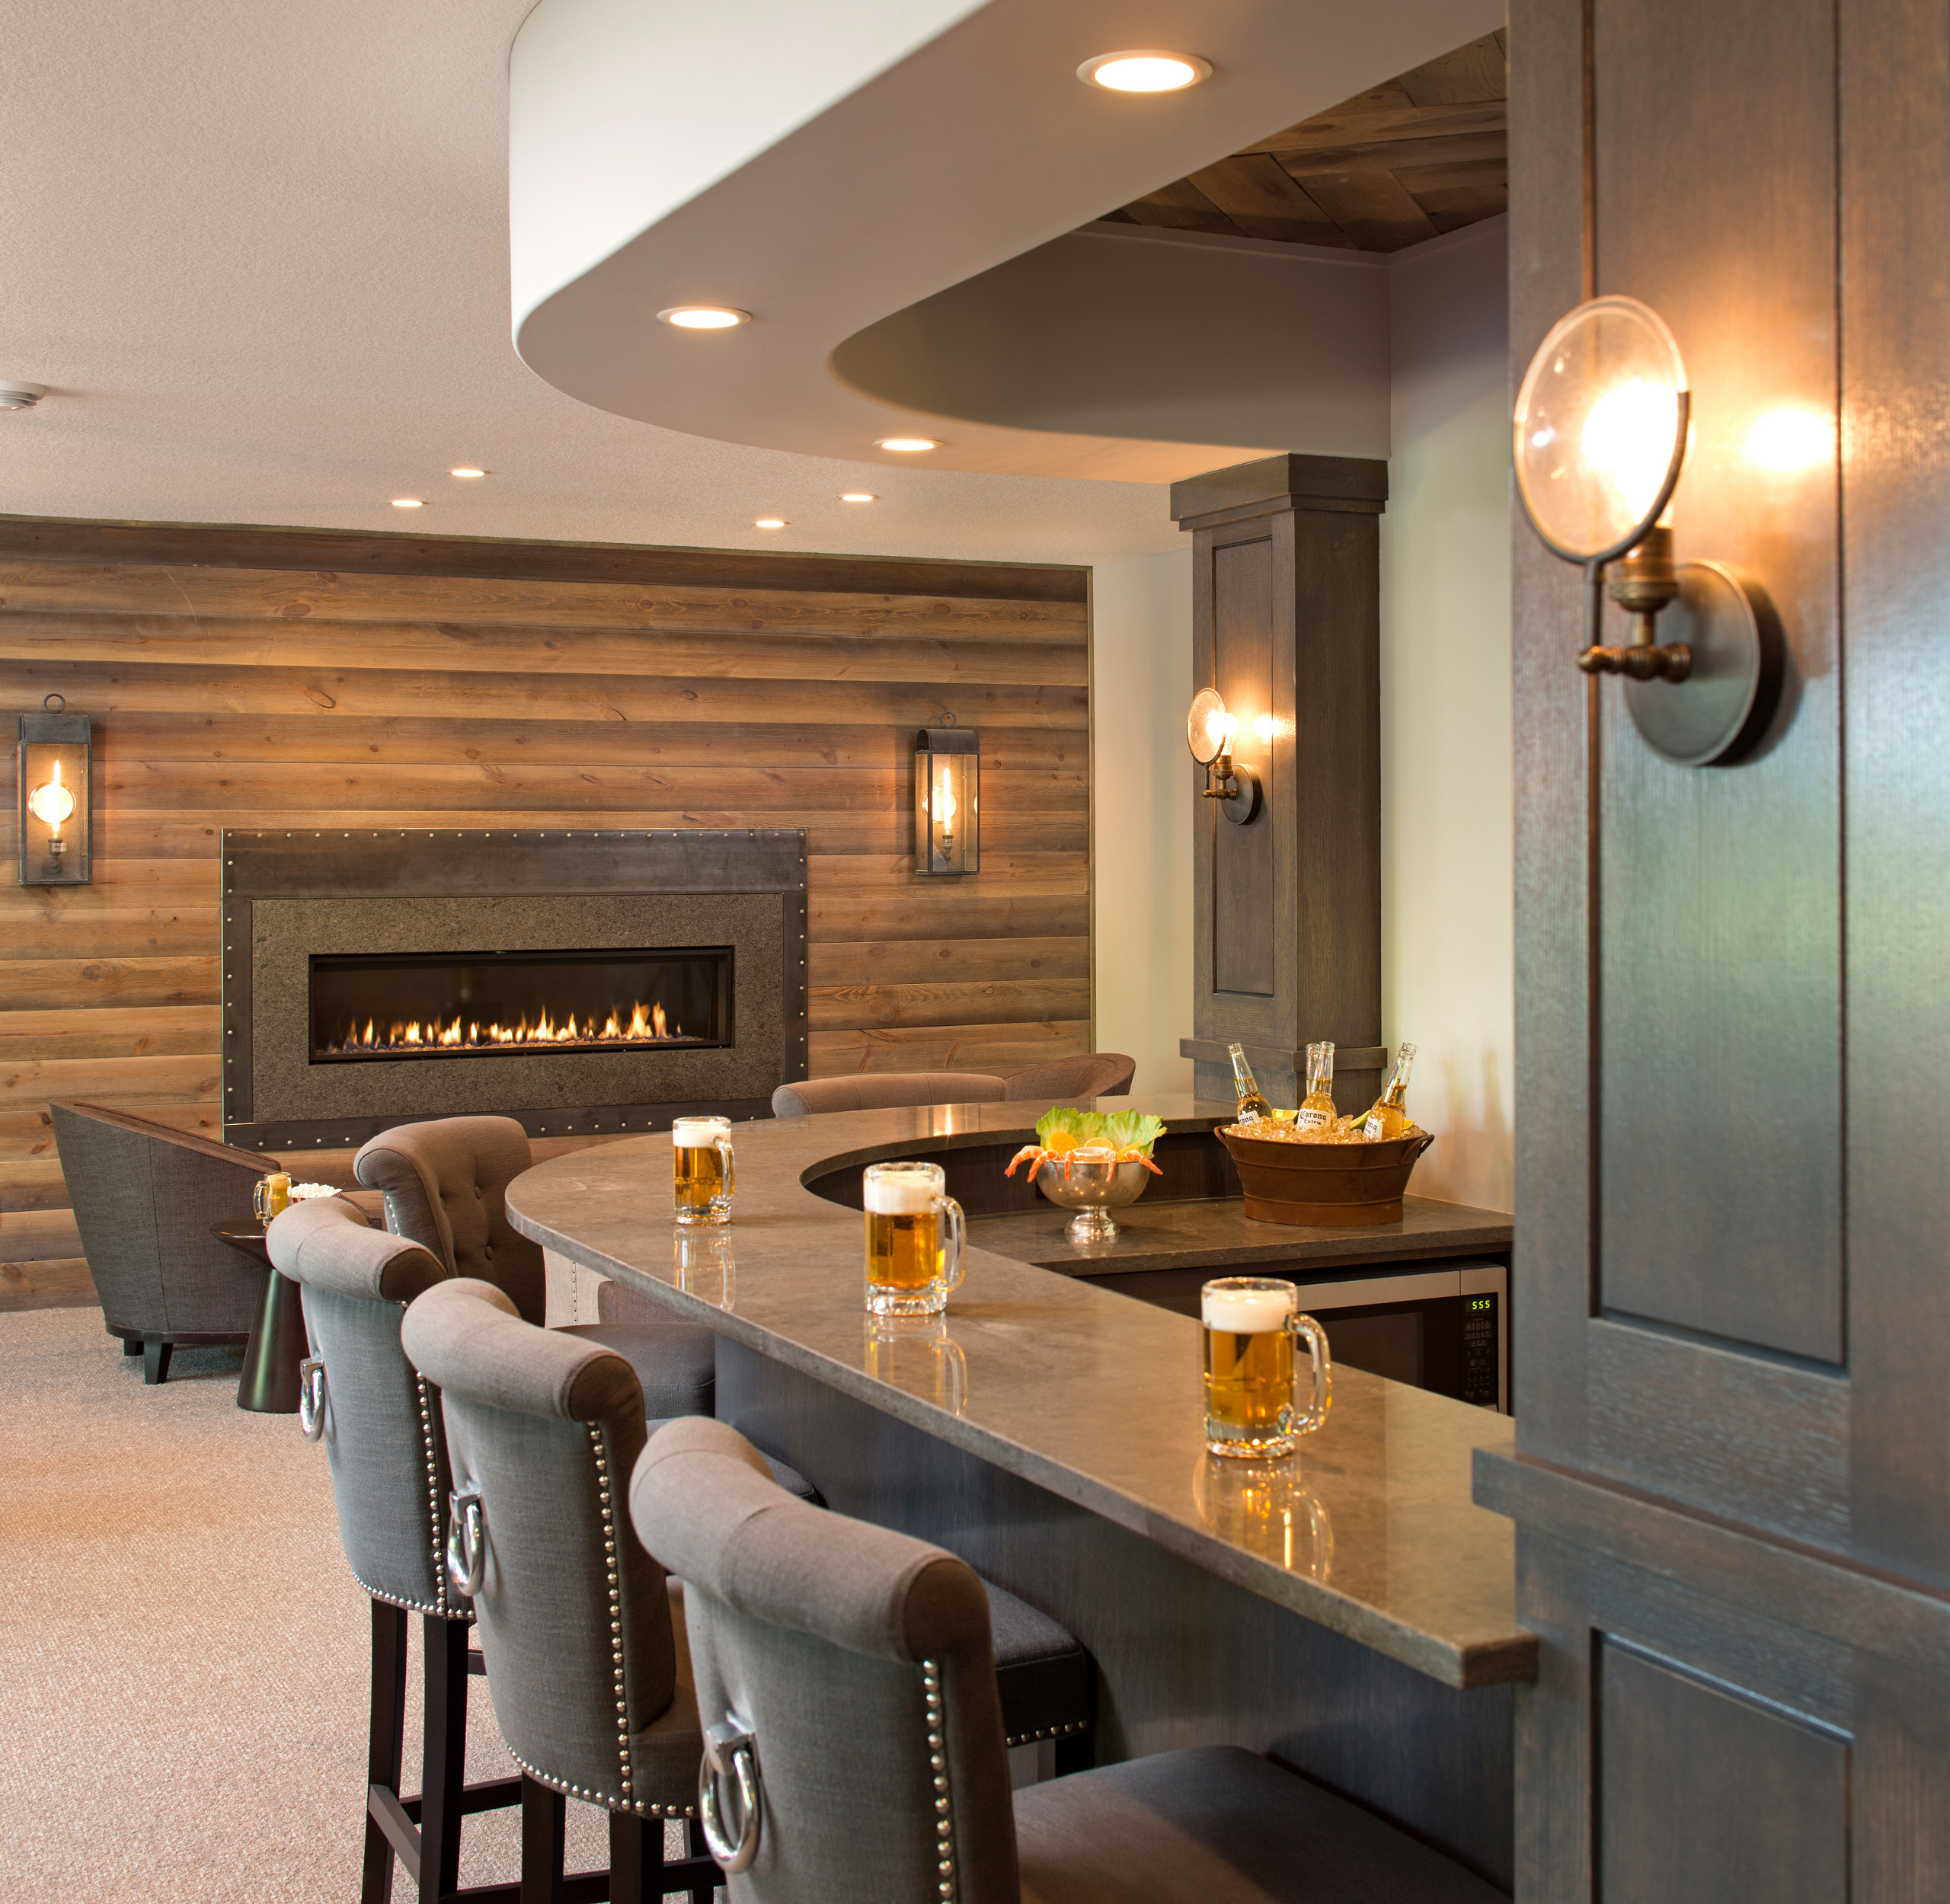 75 Beautiful Home Bar With Solid Surface Countertops Pictures Ideas January 2021 Houzz